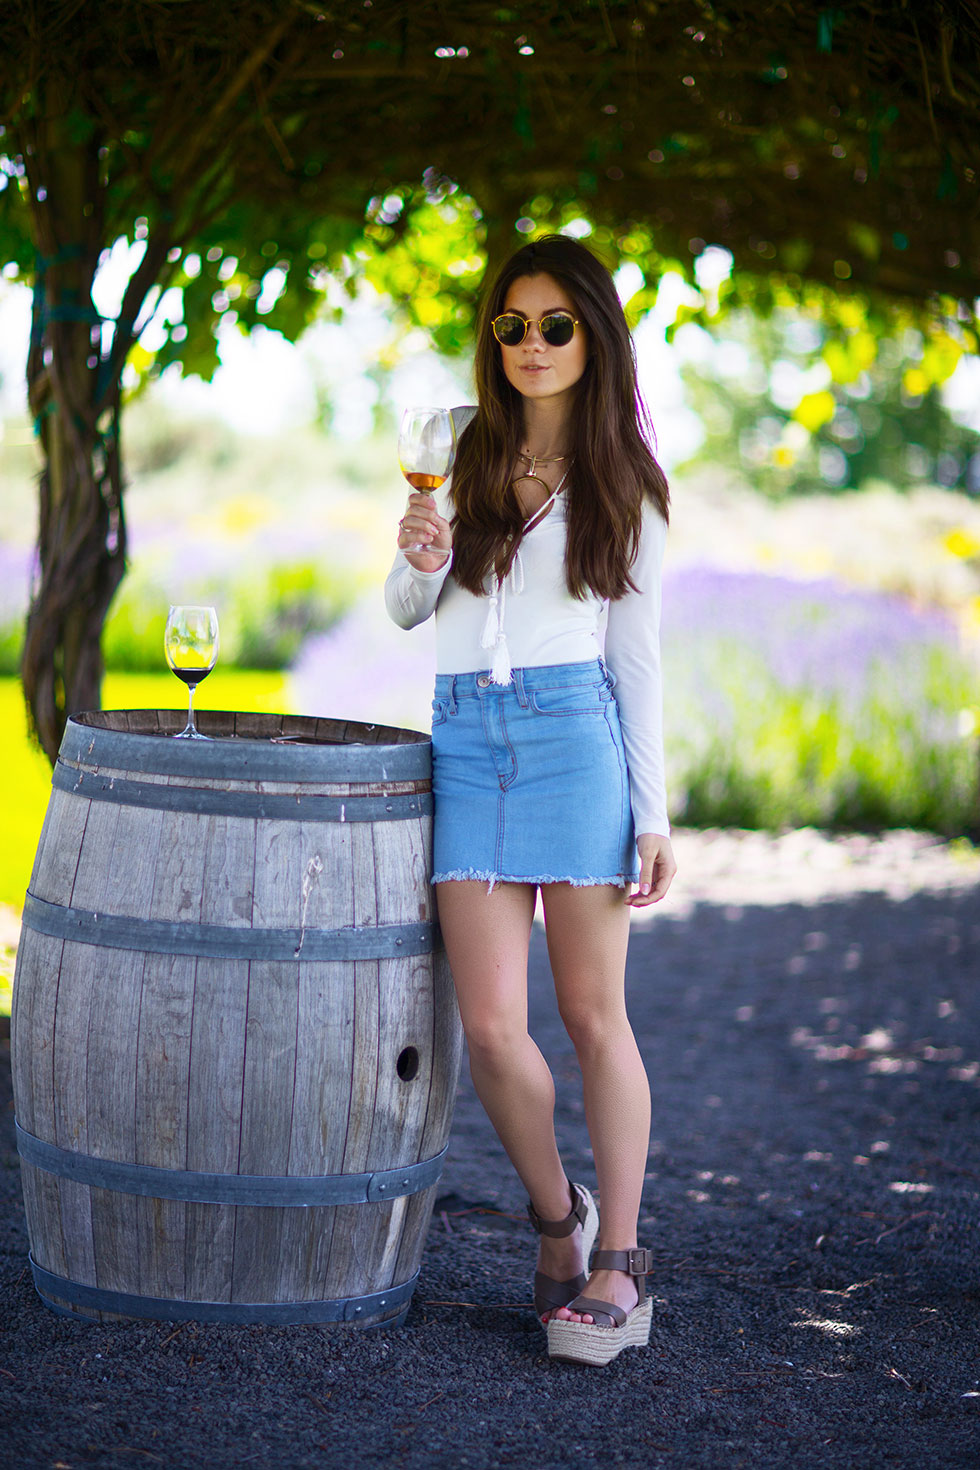 What to wear Summer Wine Tasting - Light Wash Denim Mini Skirt, long sleeve bodysuit with tasseled rope laced around the neckline, Cave B Inn and Spa Washington State Resort Quincy wine tasting-13